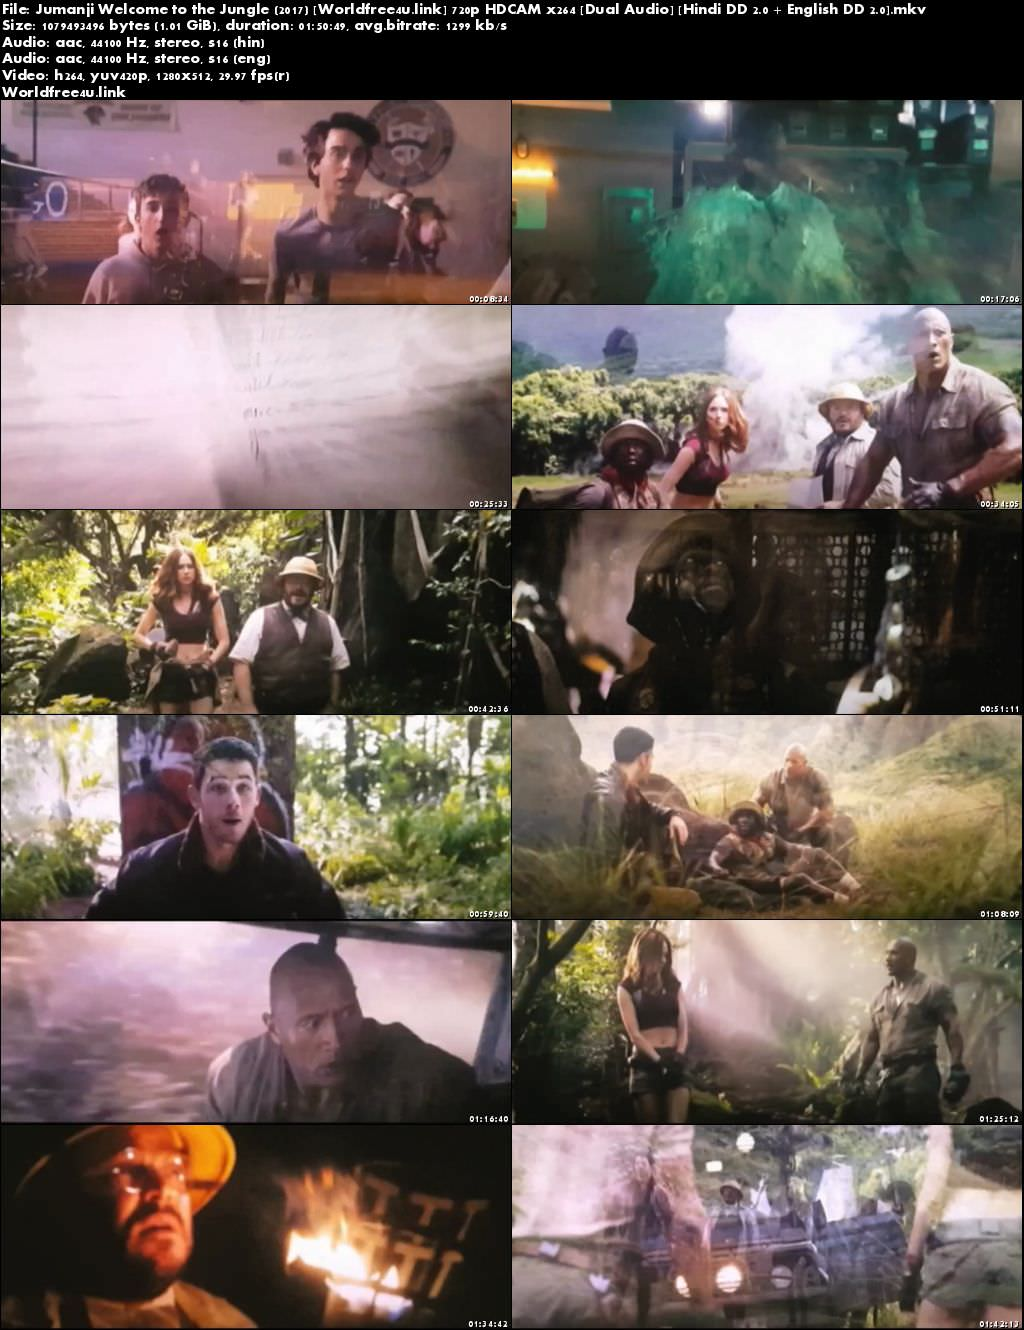 Screen Shoot of Jumanji: Welcome to the Jungle 2017 Full Hindi Movie Download Dual Audio Hd Watch Free Online In English, Jumanji Welcome to the Jungle 2017 Hindi Dubbed Movie Download